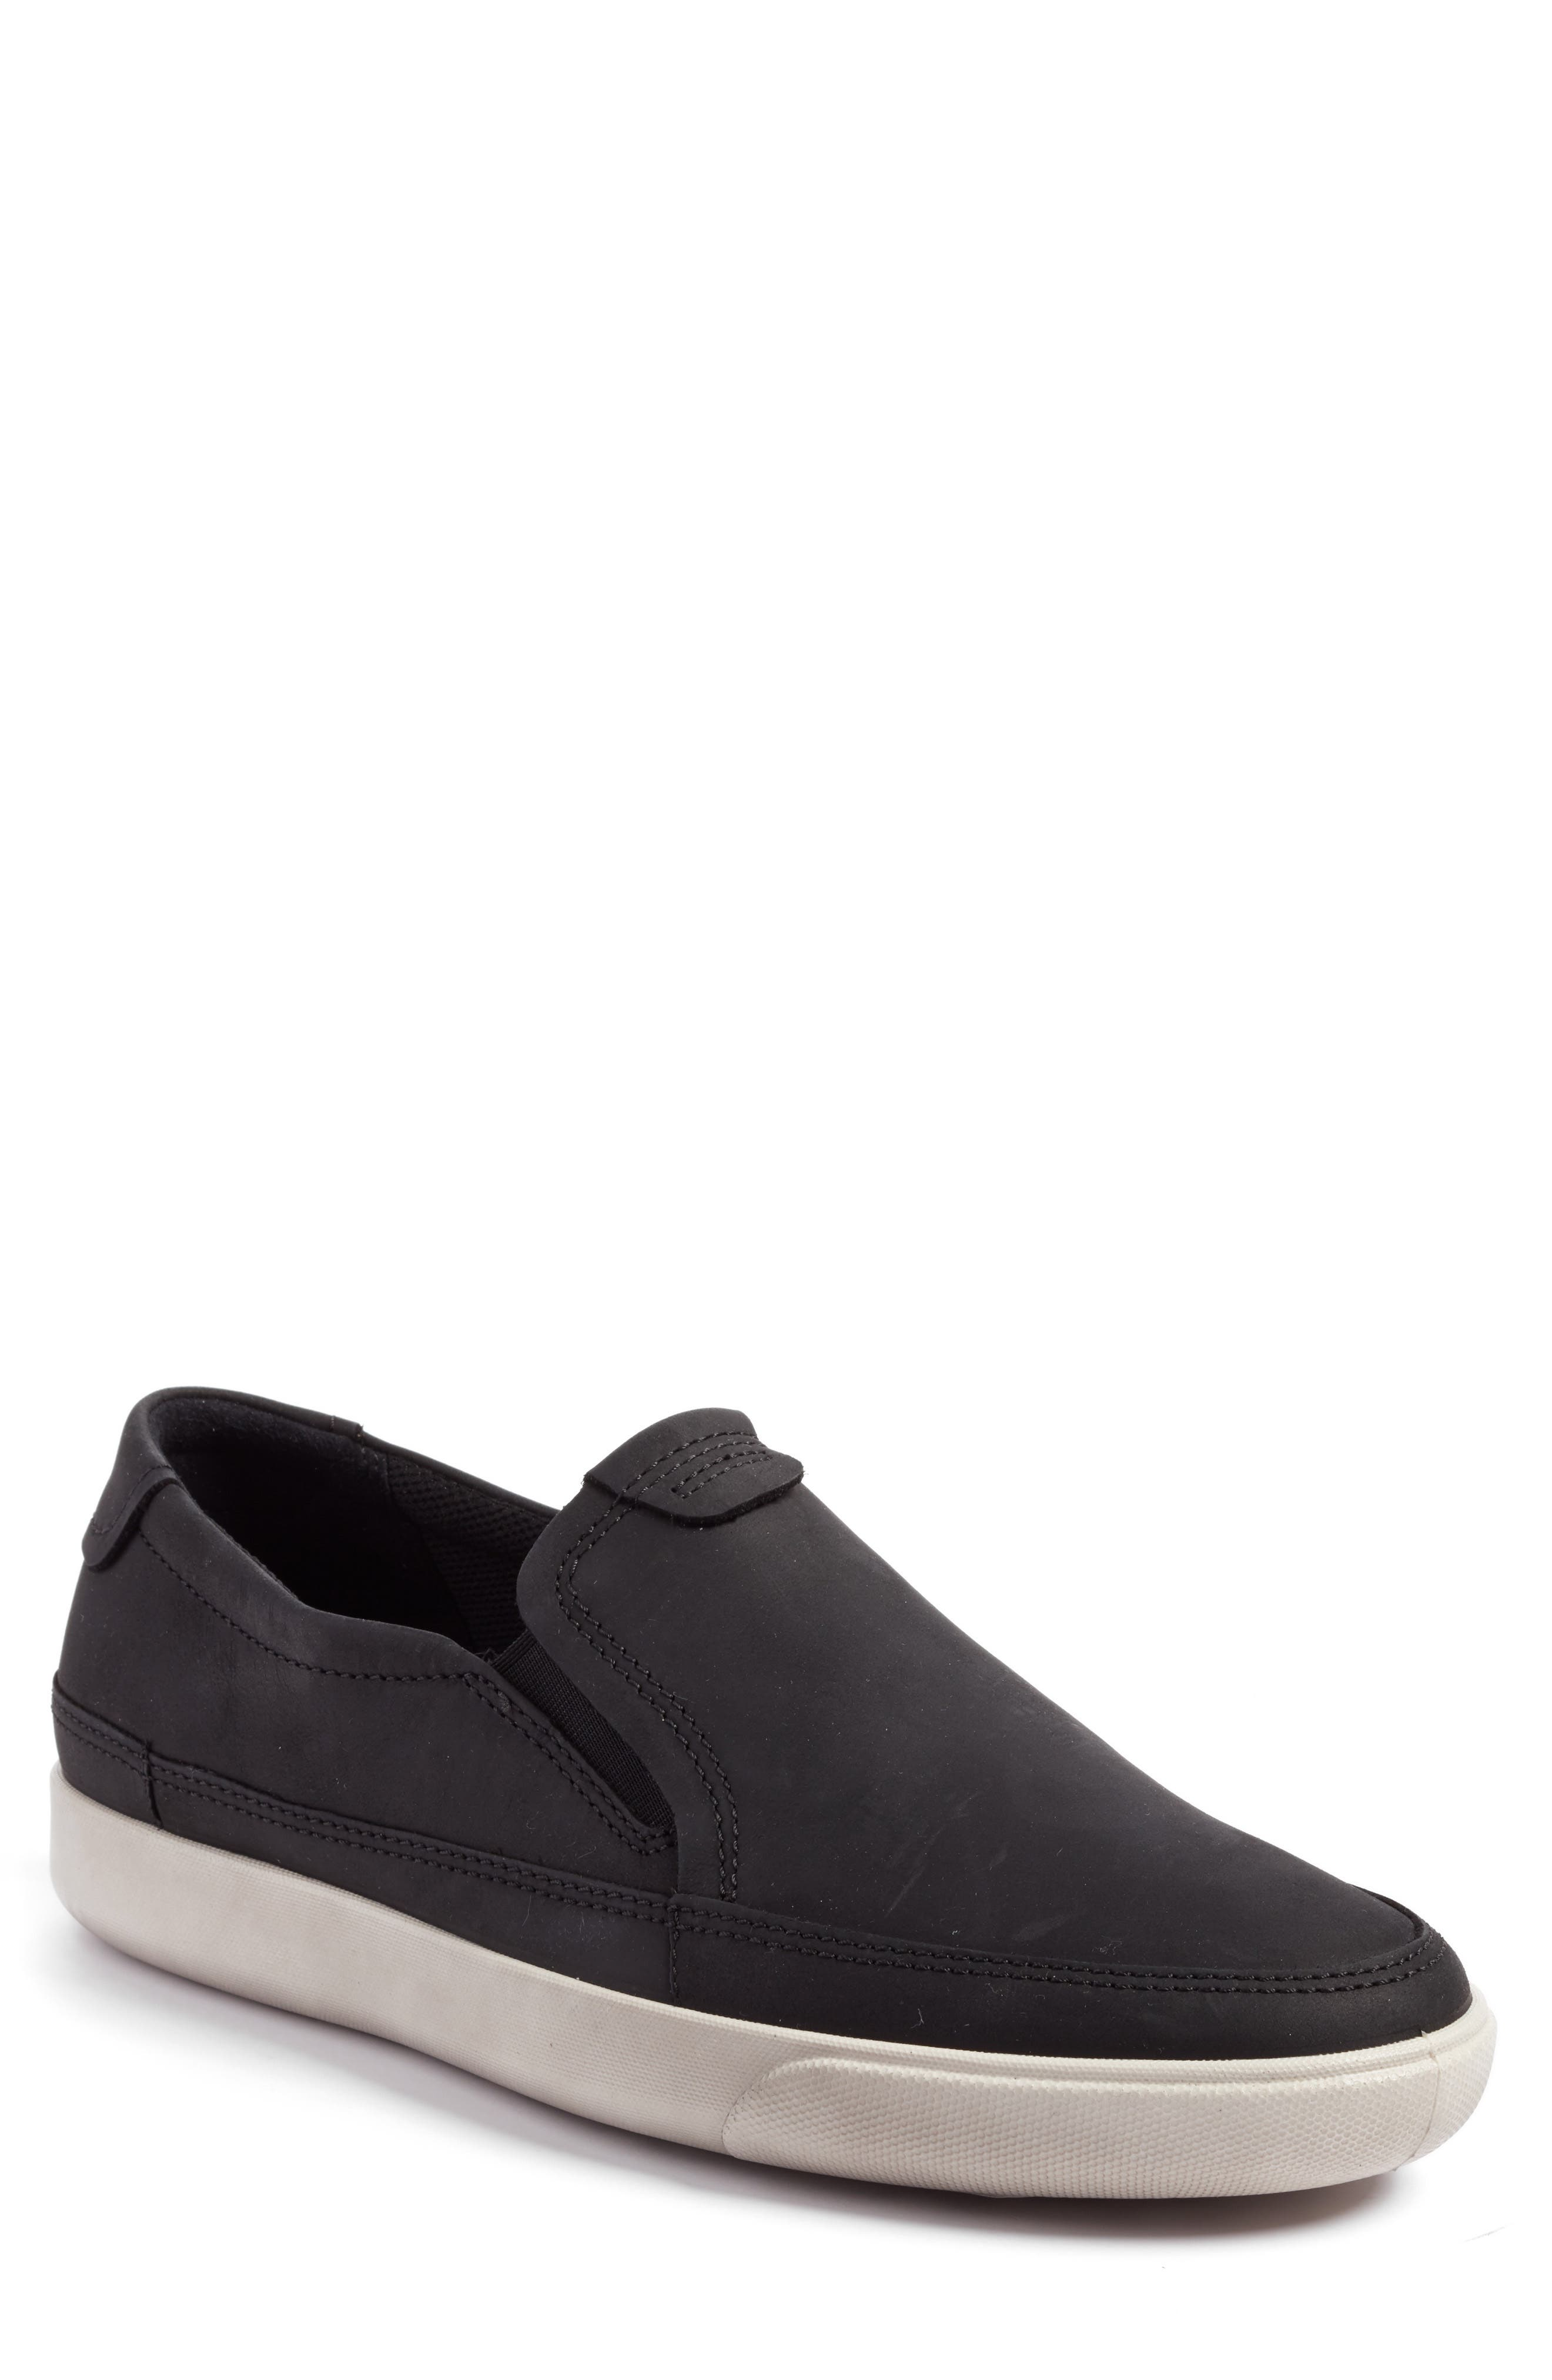 'Gary' Slip-On,                             Main thumbnail 1, color,                             Black Leather